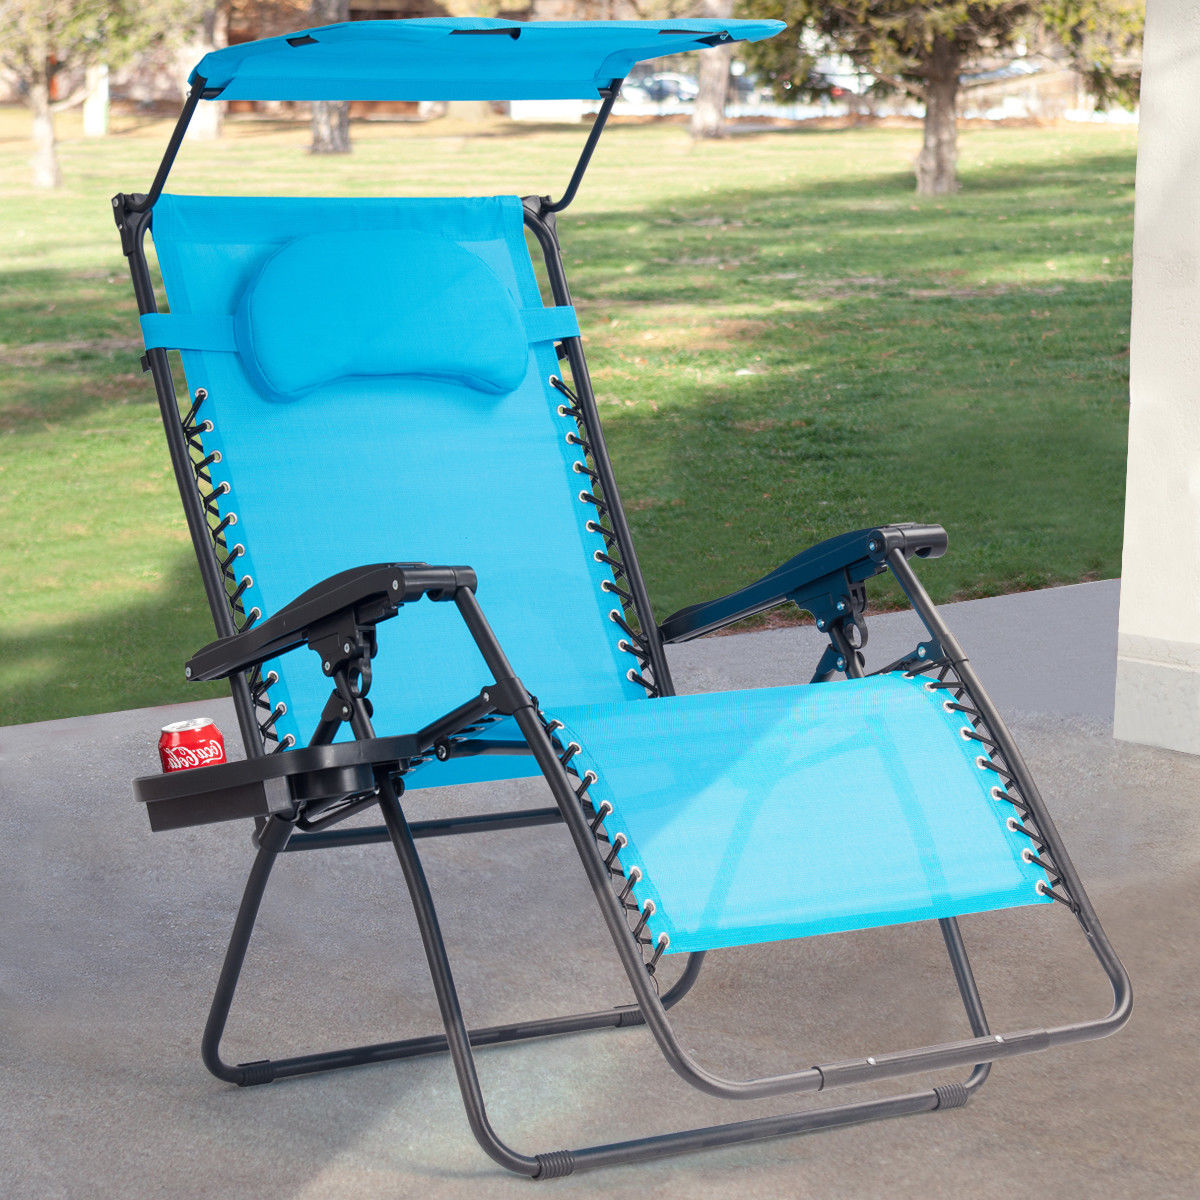 Gymax Folding Recliner Zero Gravity Lounge Chair W/ Shade Canopy Cup Holder Blue